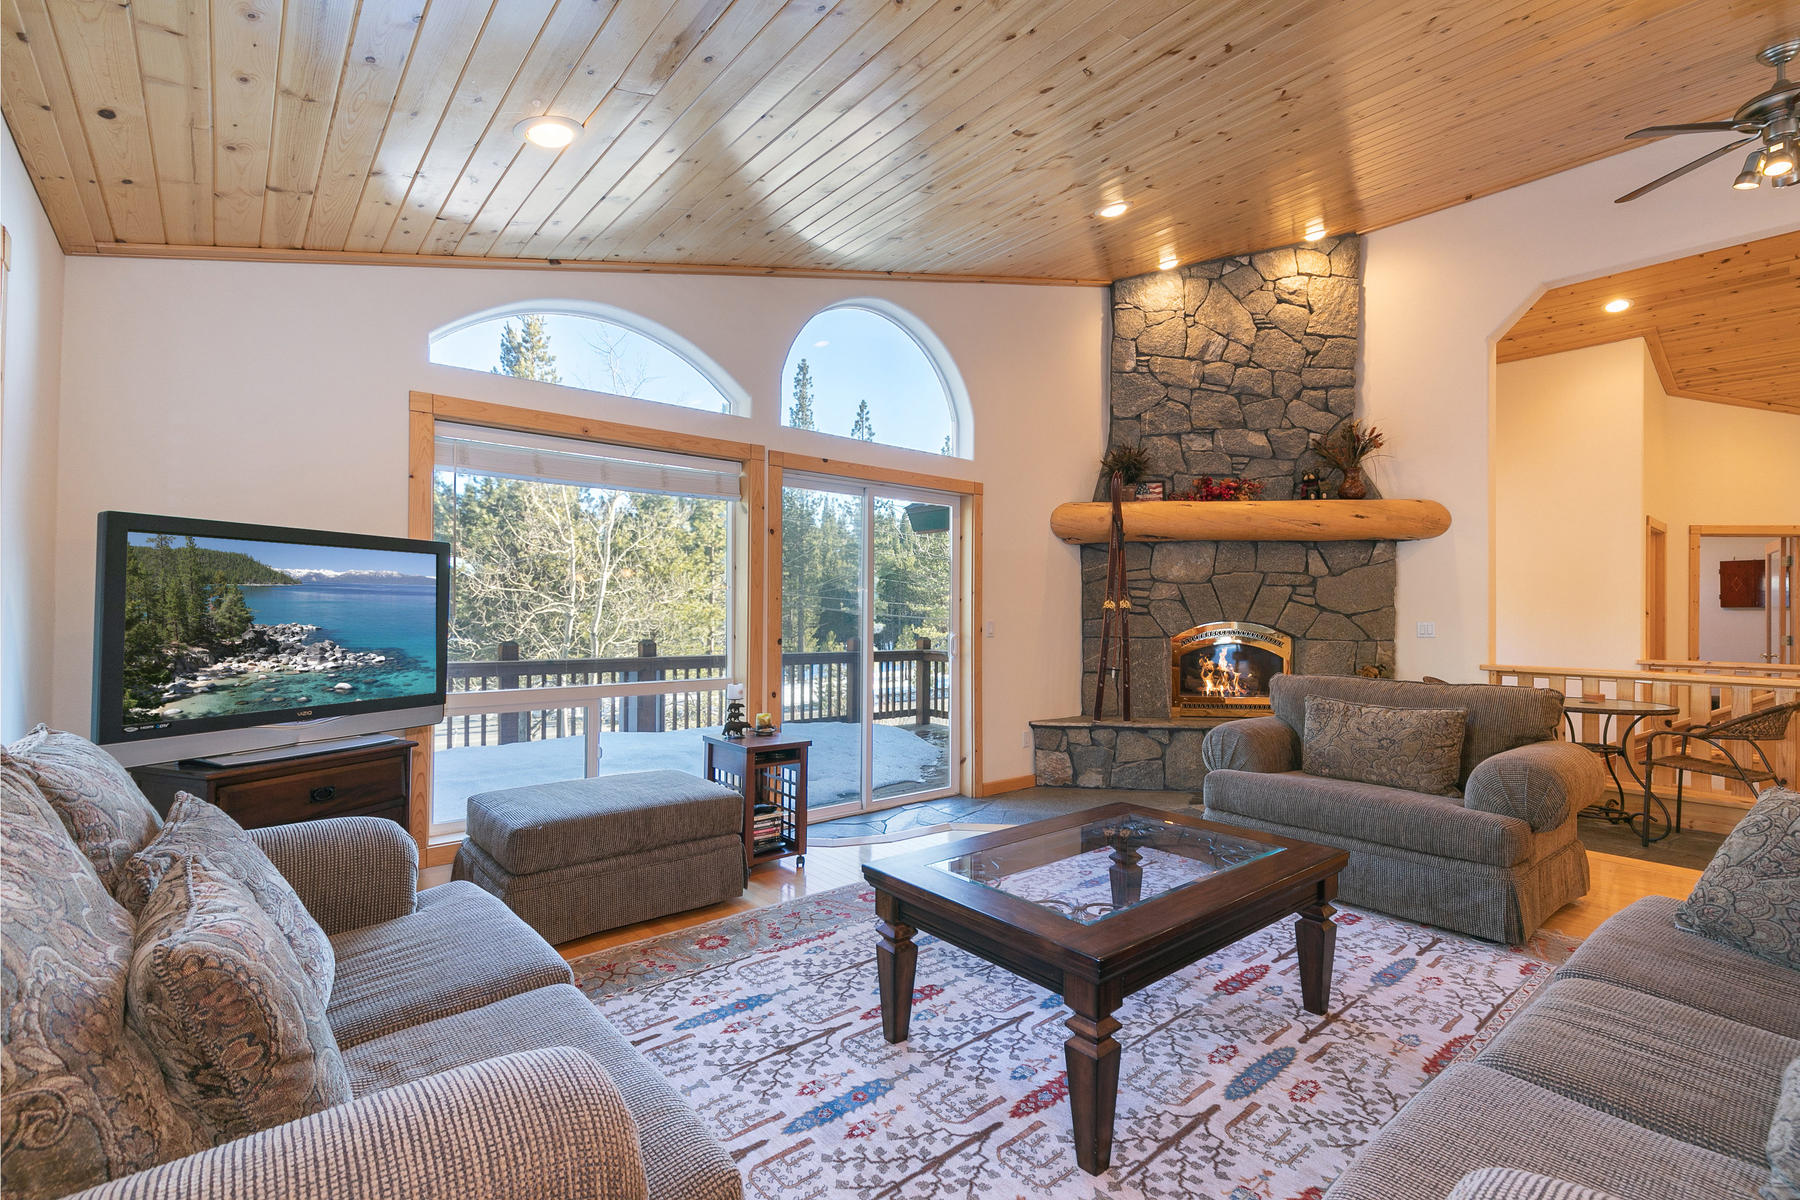 Additional photo for property listing at 14922 Alder Creek Road Truckee California 96161 14922 Alder Creek Road Truckee, California 96161 United States